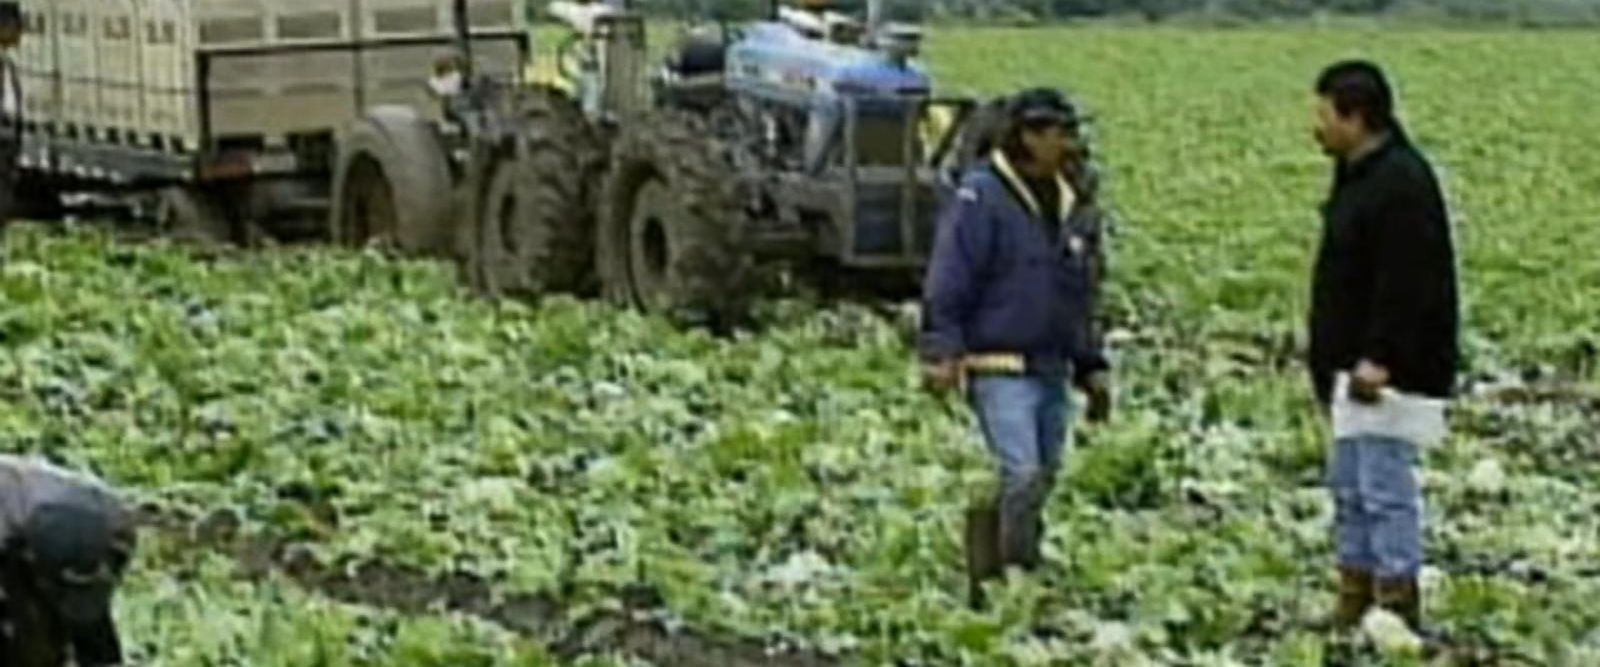 VIDEO: This is different from a recent multistate E.Coli outbreak connected to romaine lettuce.